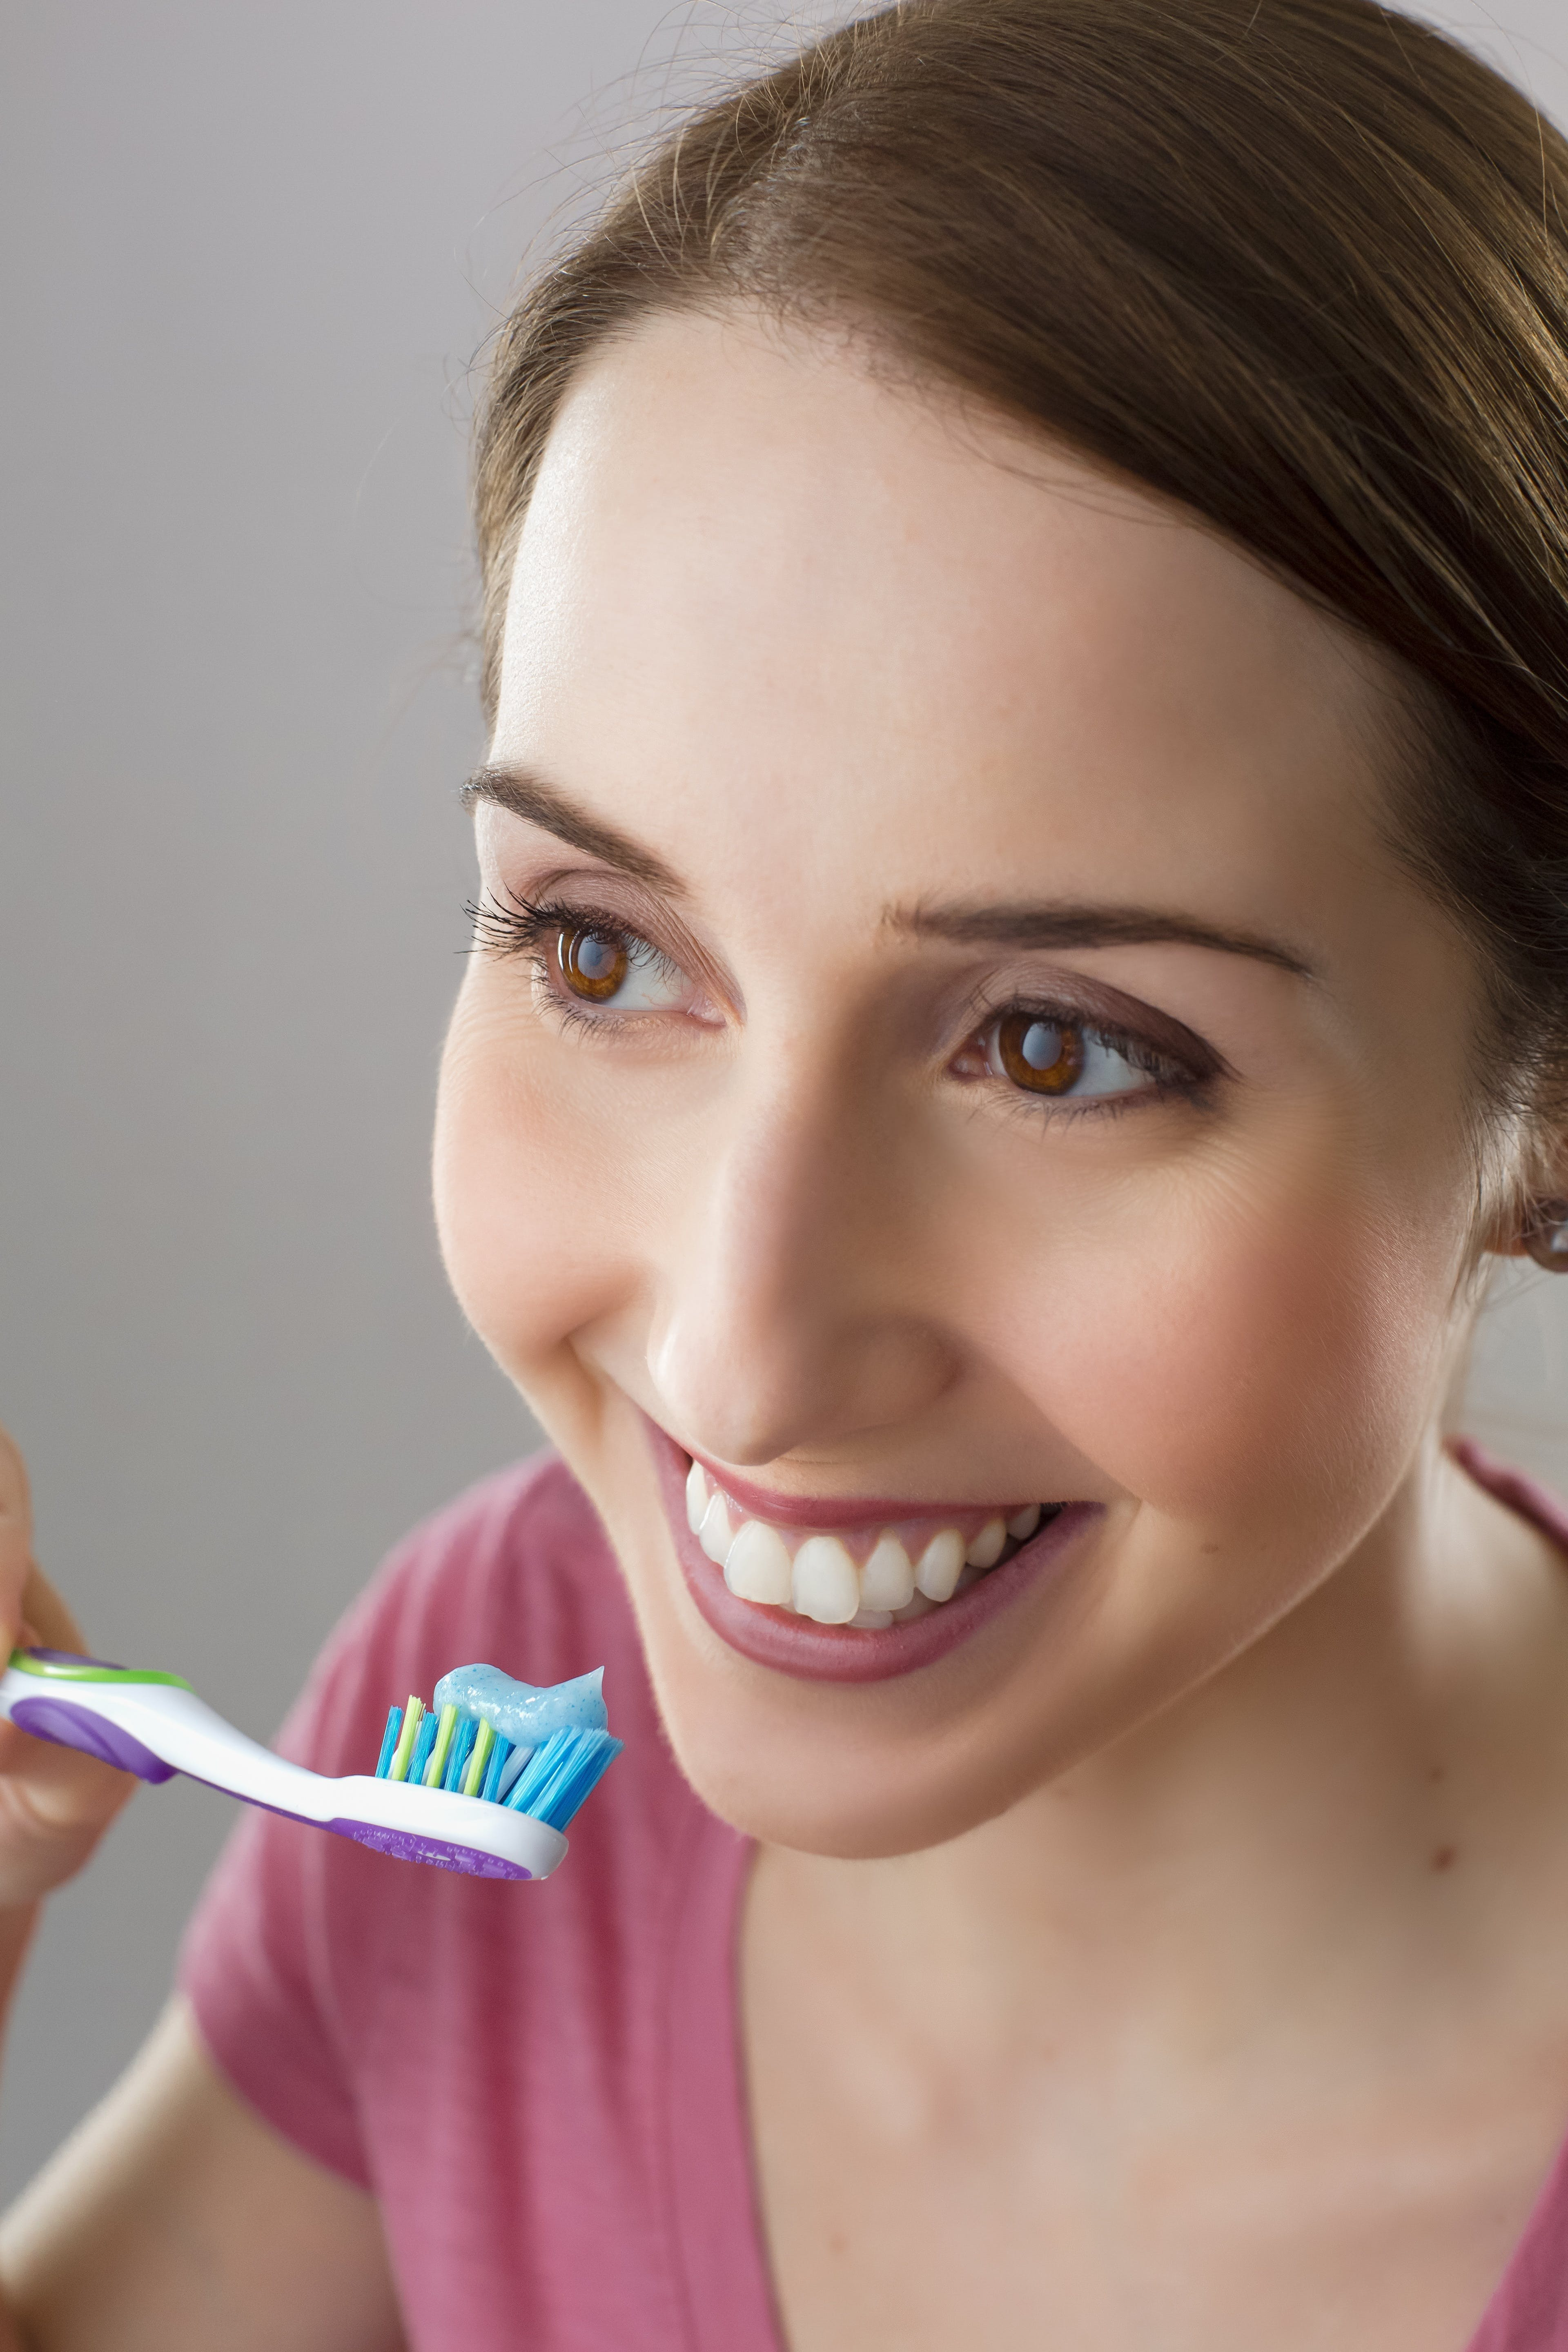 Free stock photo of dentist, hygiene, smile, tooth